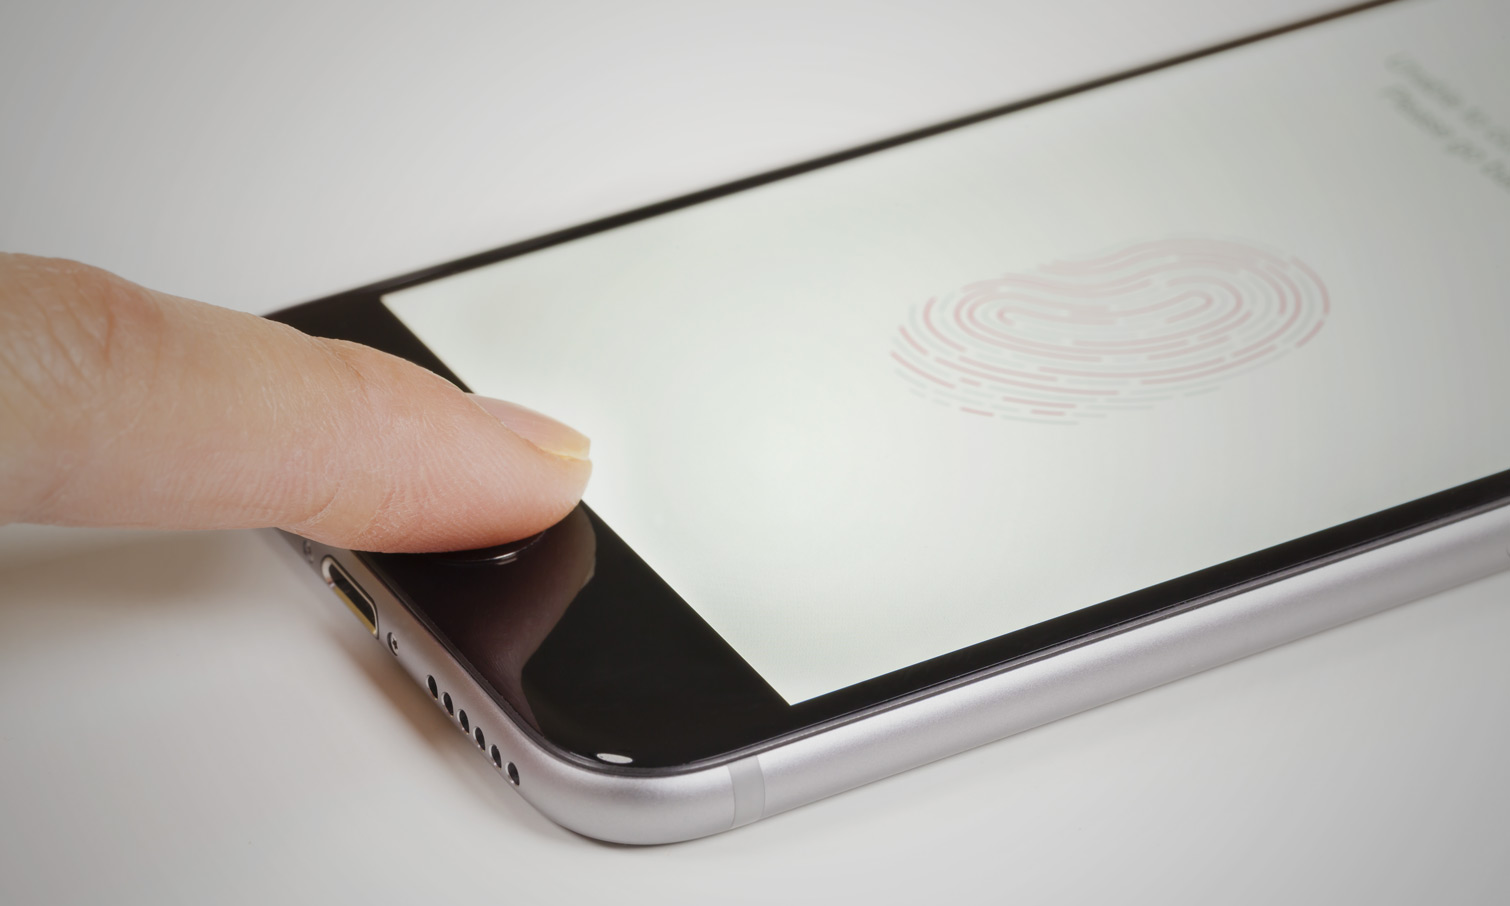 Touch ID -iphone